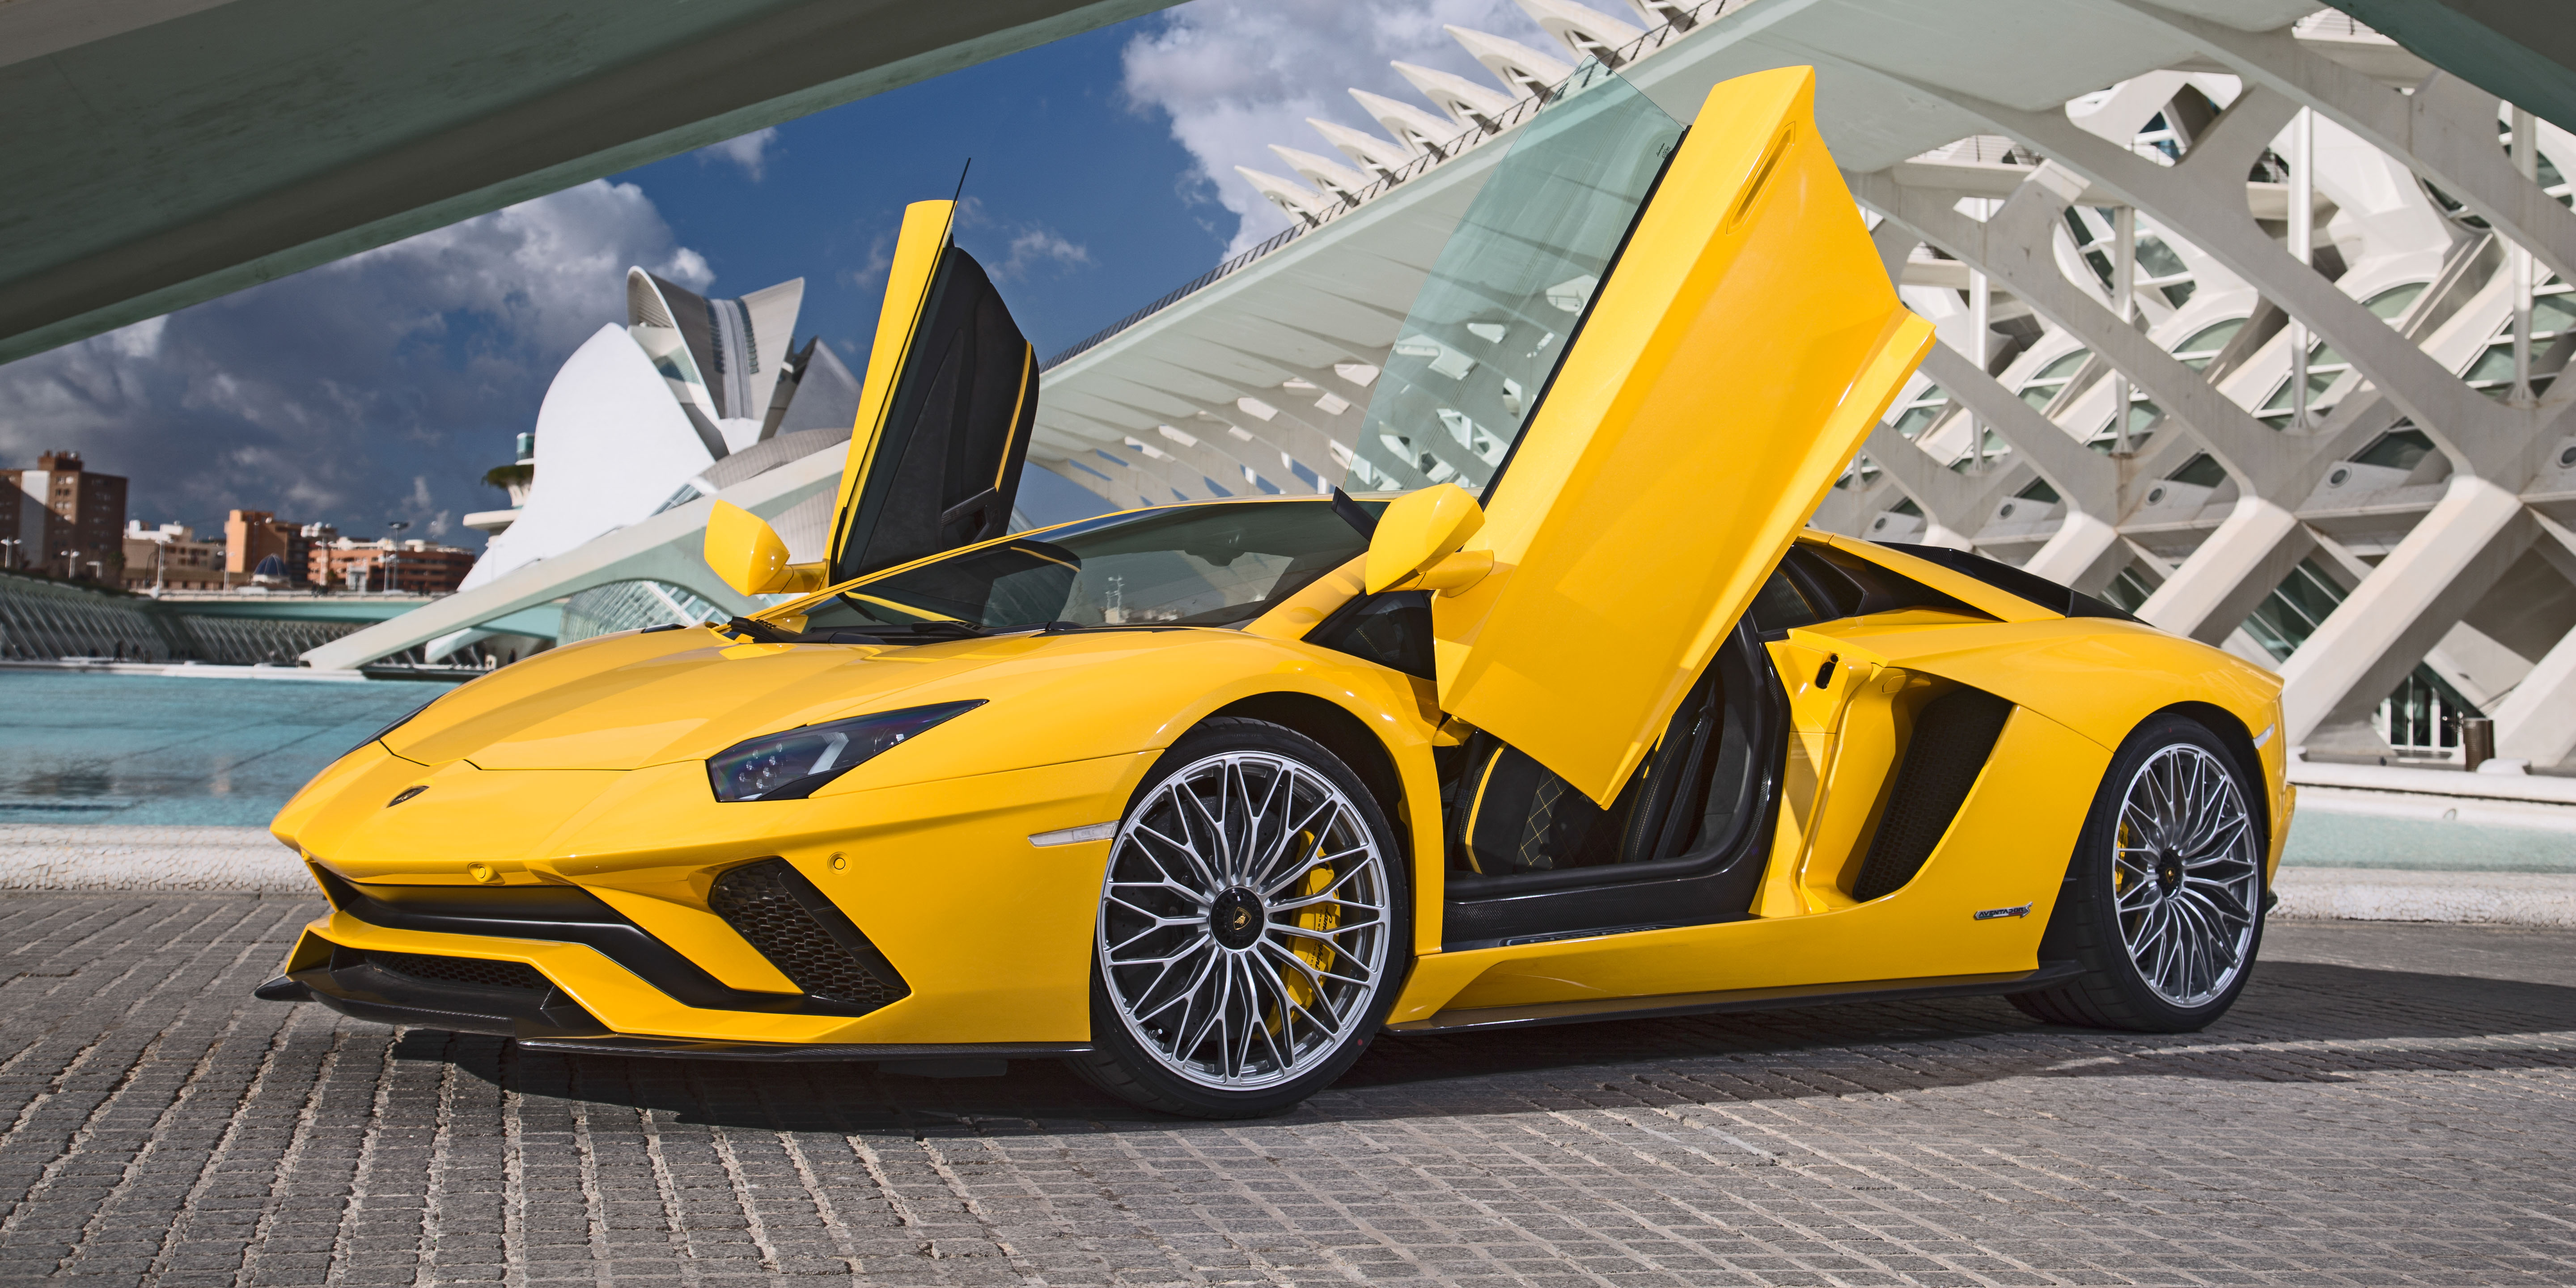 Lamborghini Aventador S photo 173834